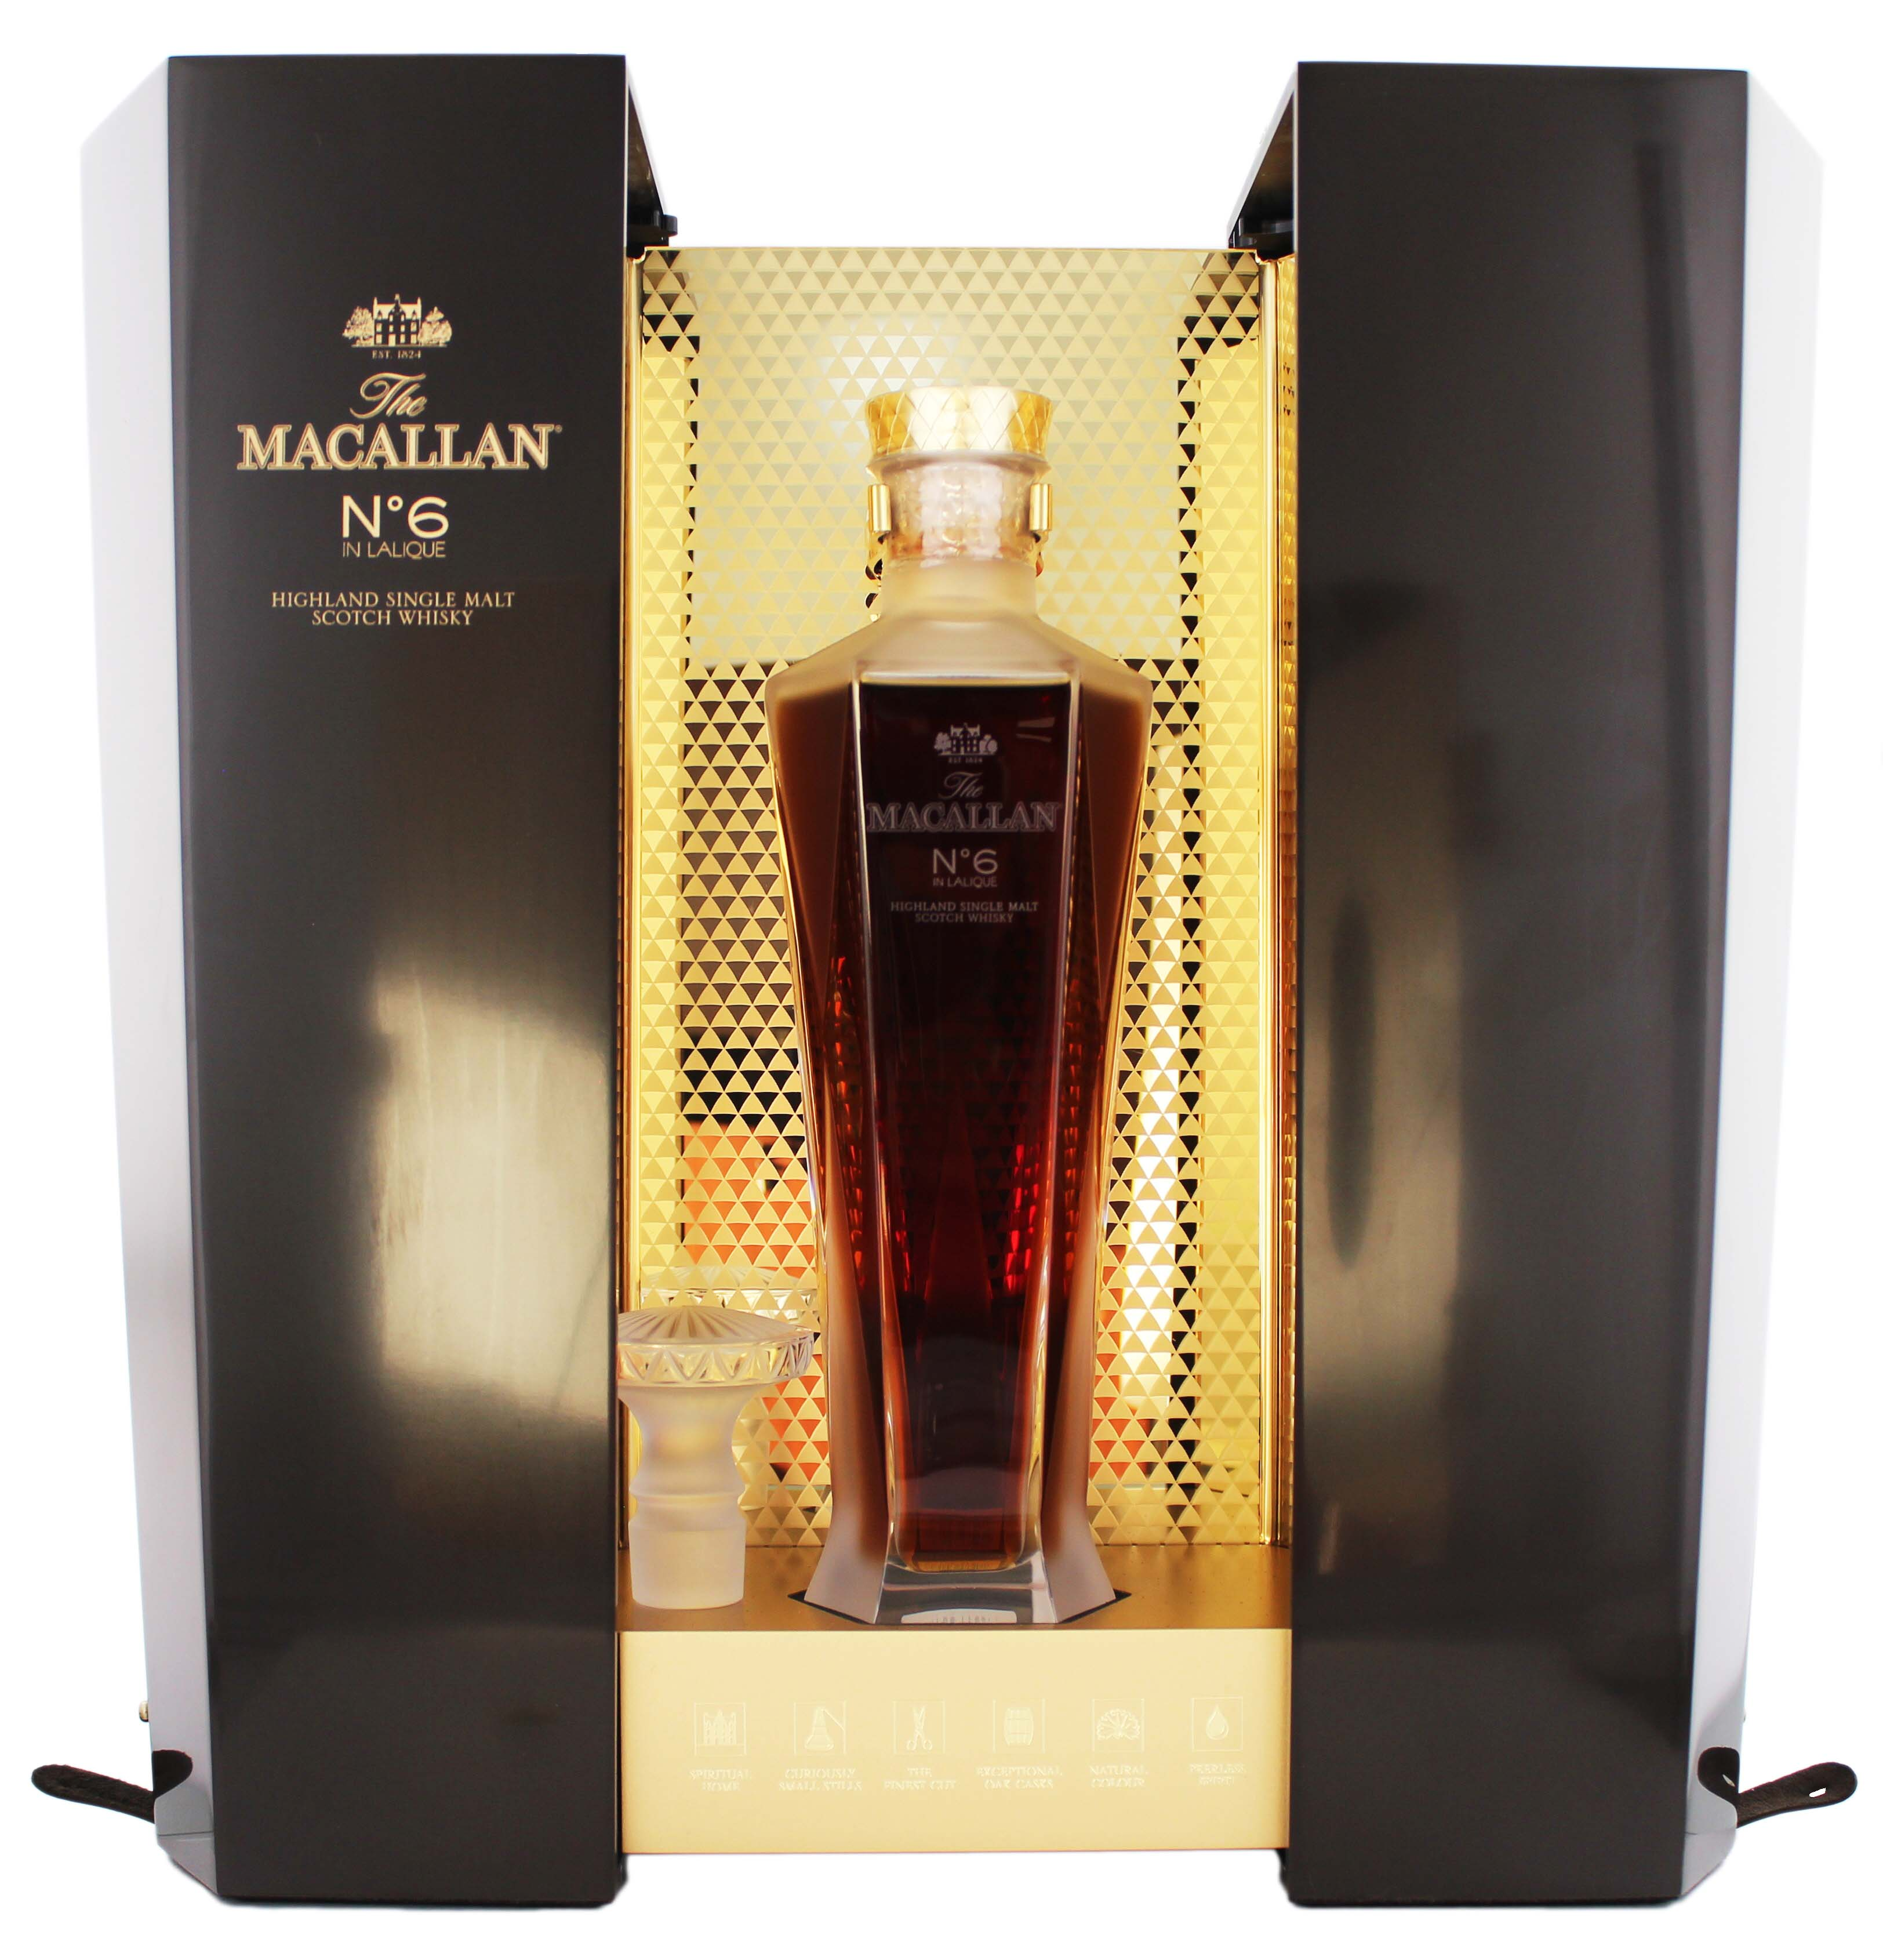 The Macallan Single Malt Whisky No. 6 in Lalique Decanter, 0,7L 43%